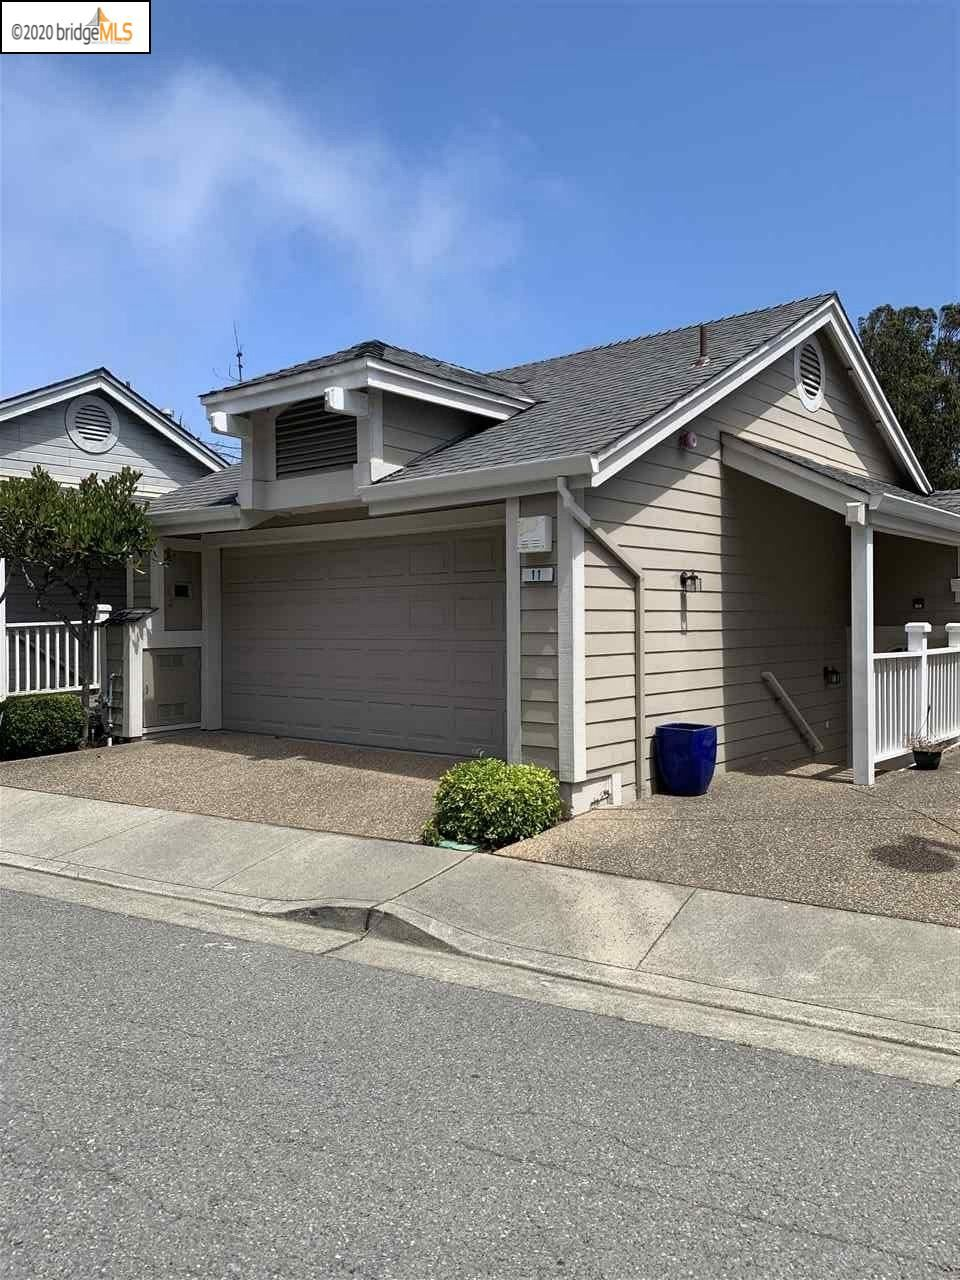 Photo for 11 Moonlight Court, SOUTH SAN FRANCISCO, CA 94080 (MLS # 40912701)